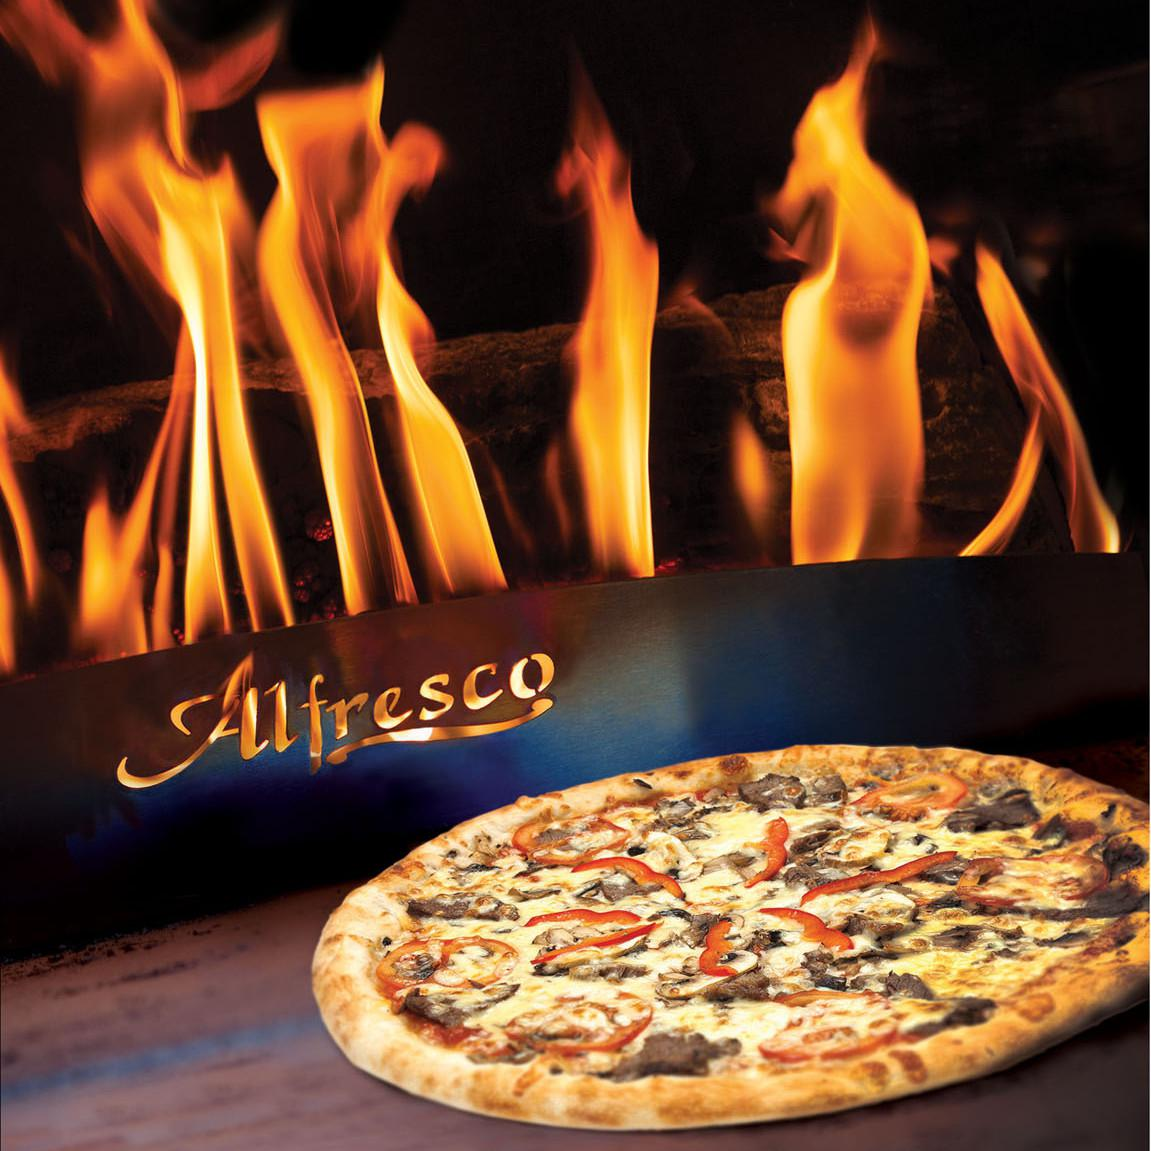 Alfresco 30-Inch Propane Gas Outdoor Pizza Oven On Cart - Lifestyle